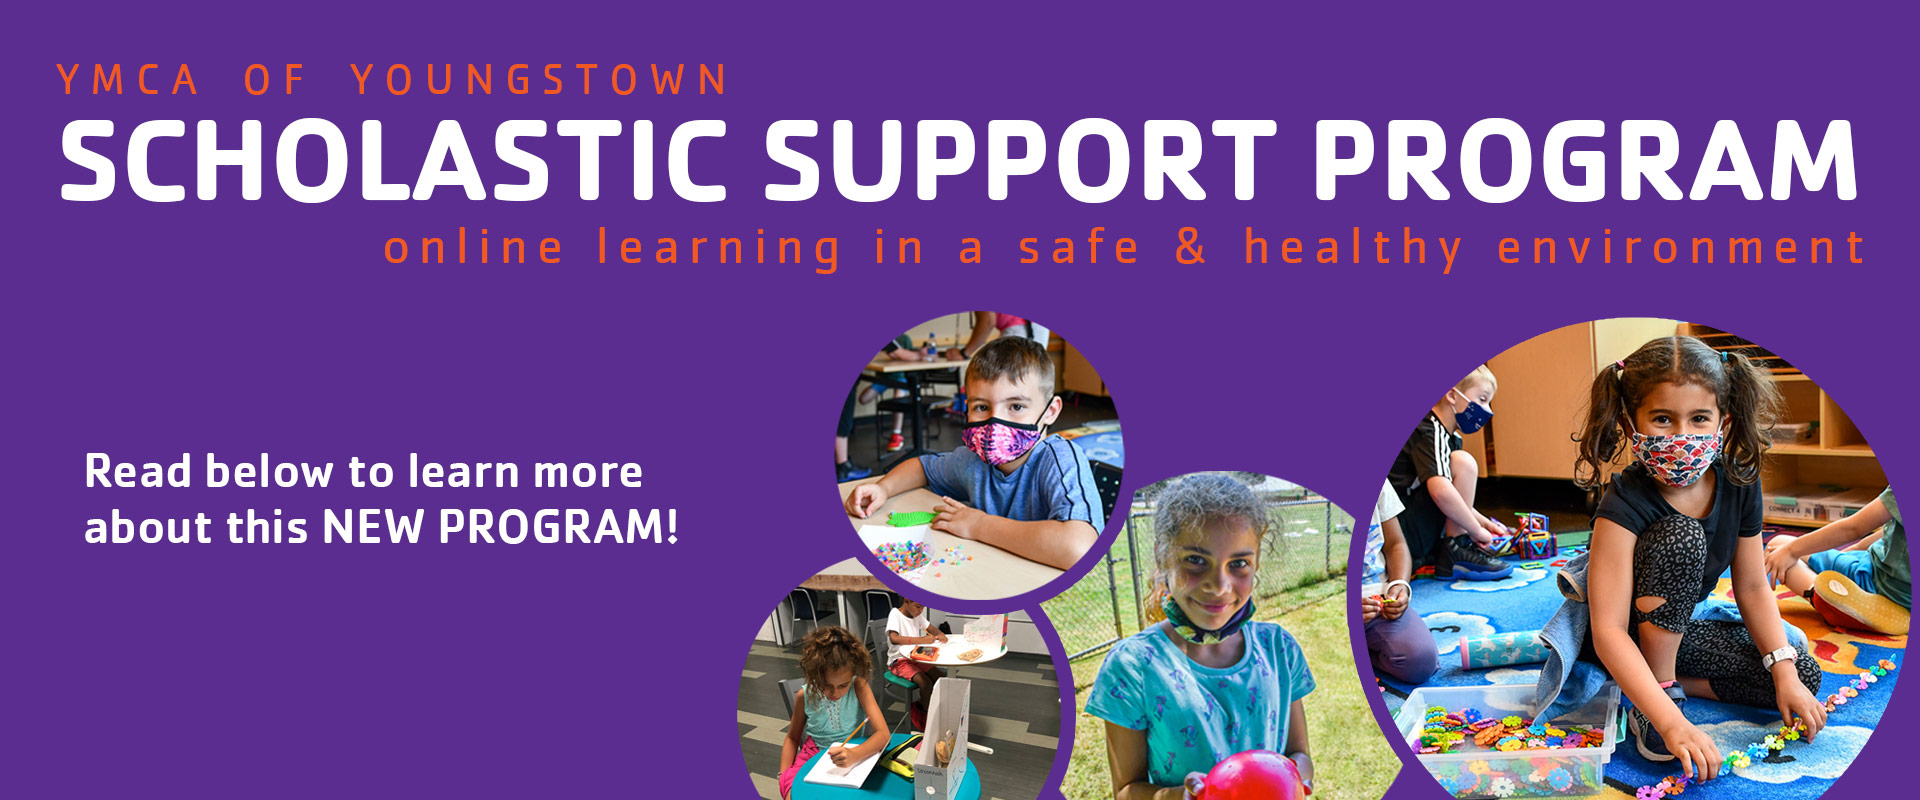 Scholastic Support Youngstown YMCA